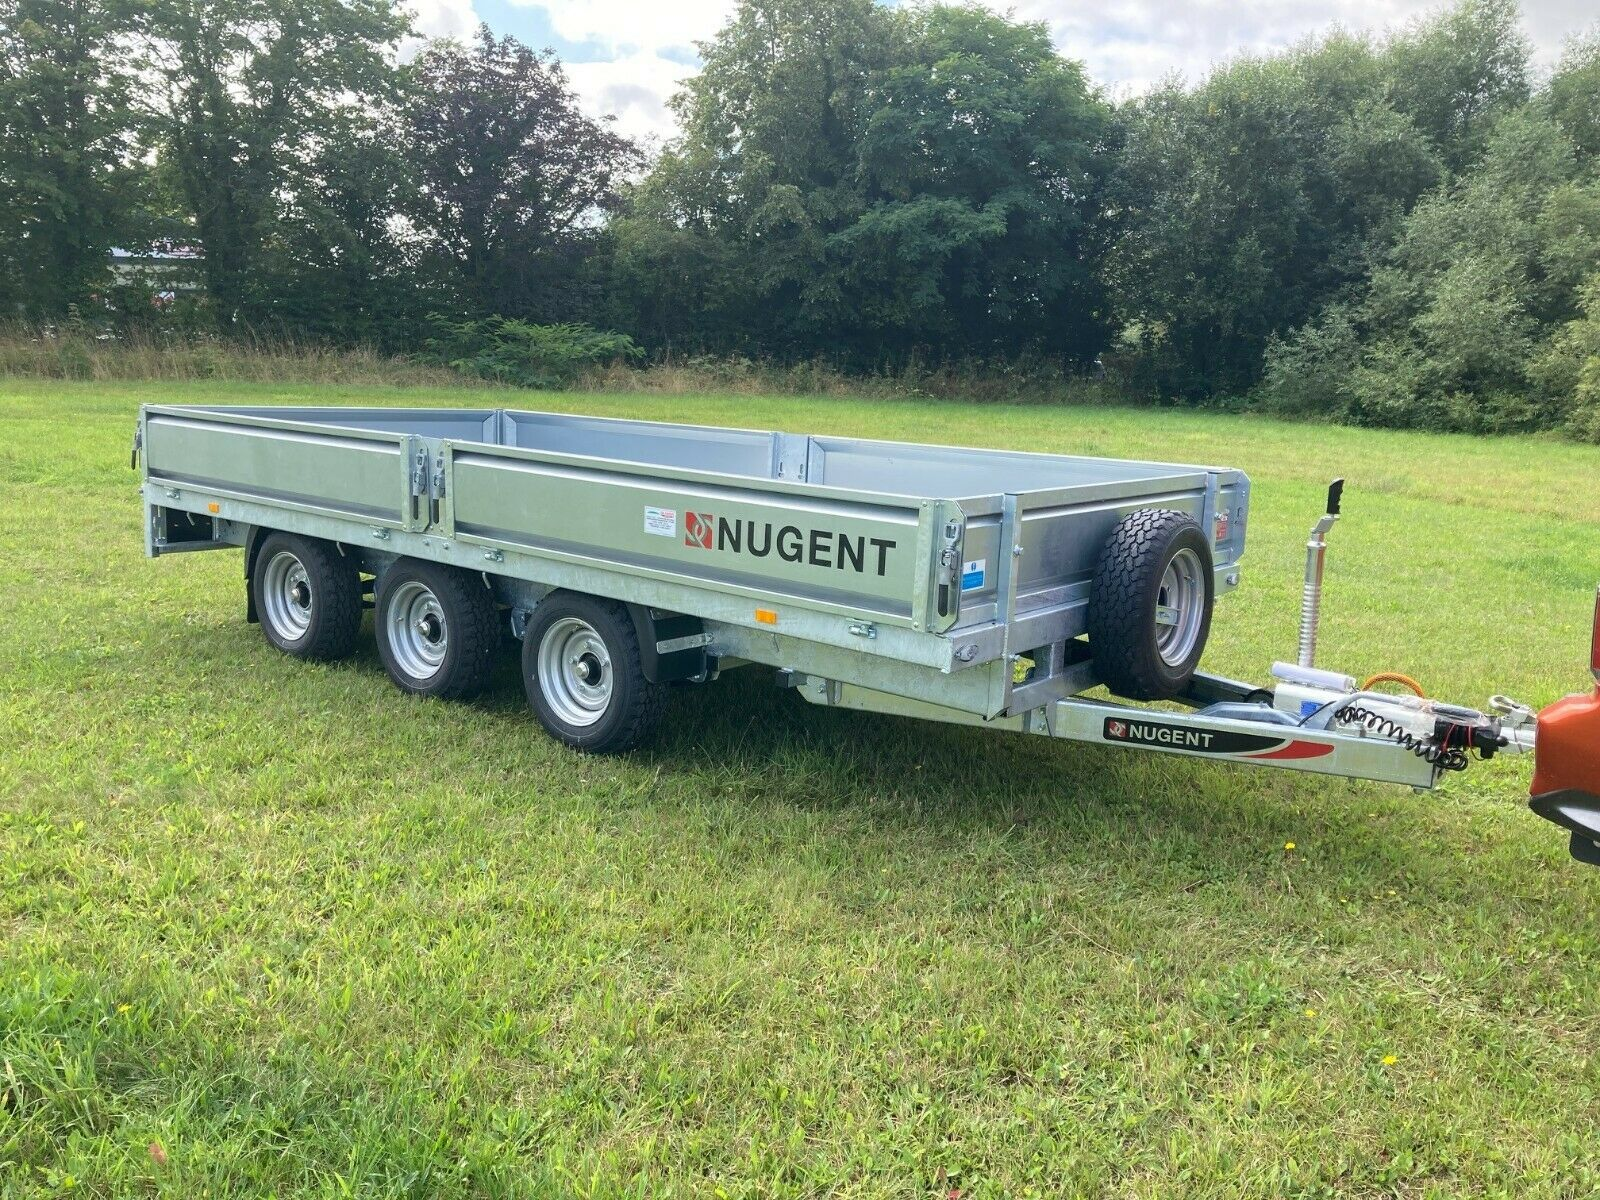 NUGENT F4320T TRI AXLE FLAT BED TRAILER - IN STOCK!!